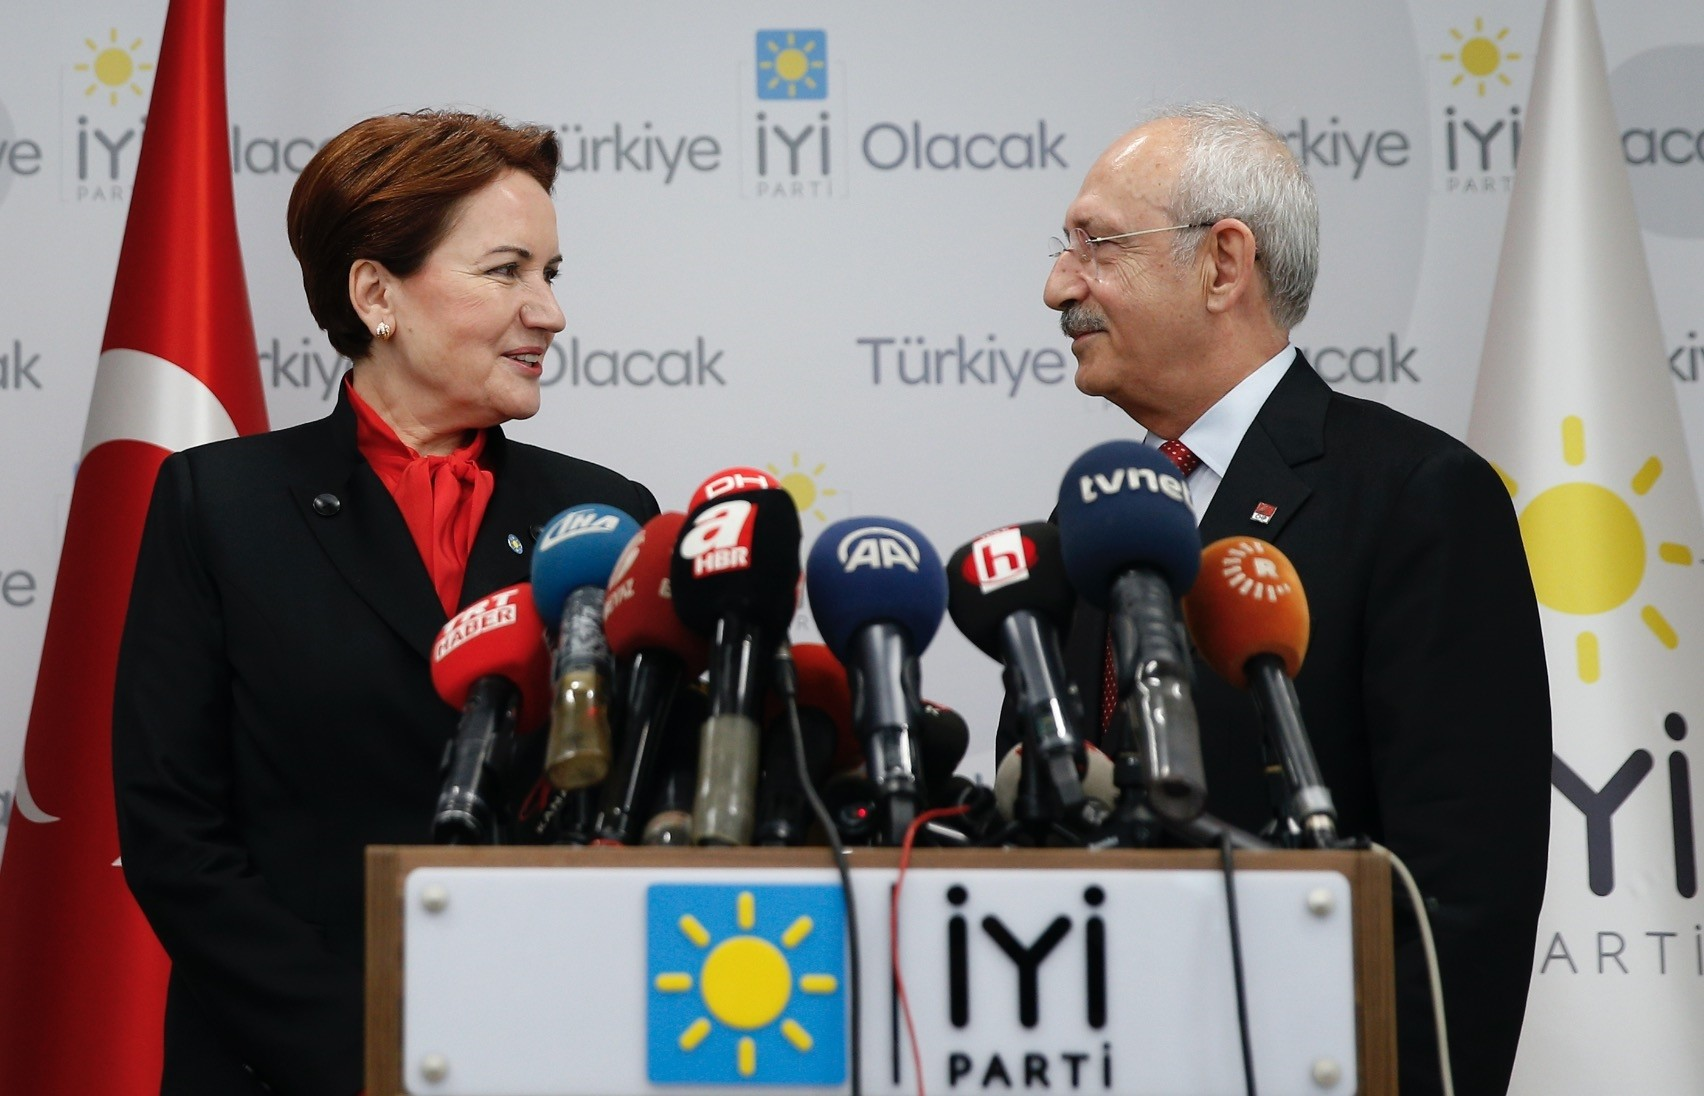 With the move of transferring deputies, the CHP allowed the u0130P the right to create a parliamentary group, which is the safest way for Aku015fener to become a presidential candidate.